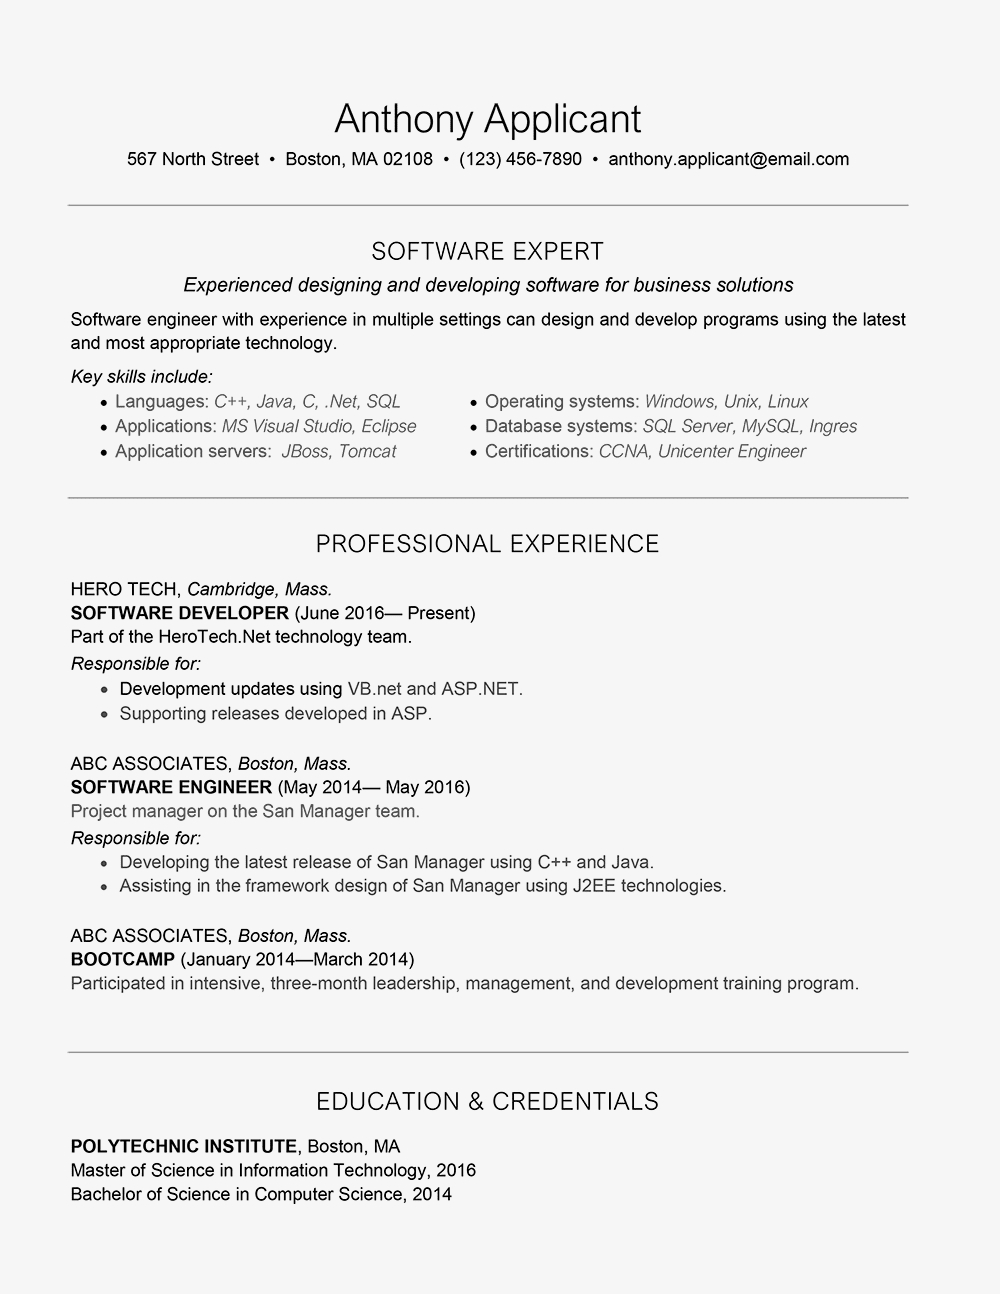 Resume for software Developer Experienced - software Developer Cover Letter and Resume Example